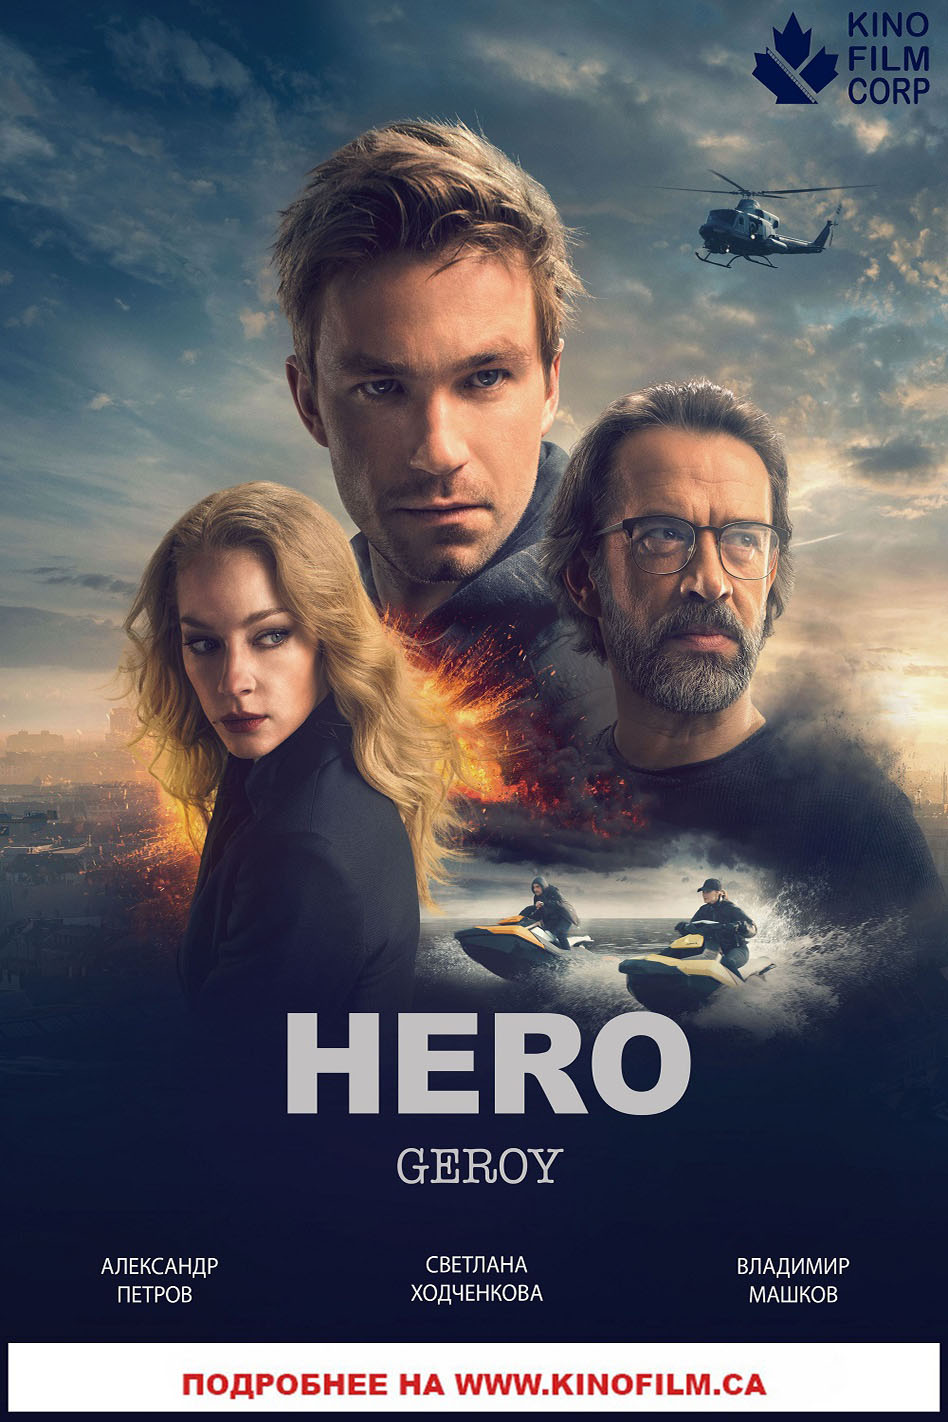 Poster for Hero (Geroy), The